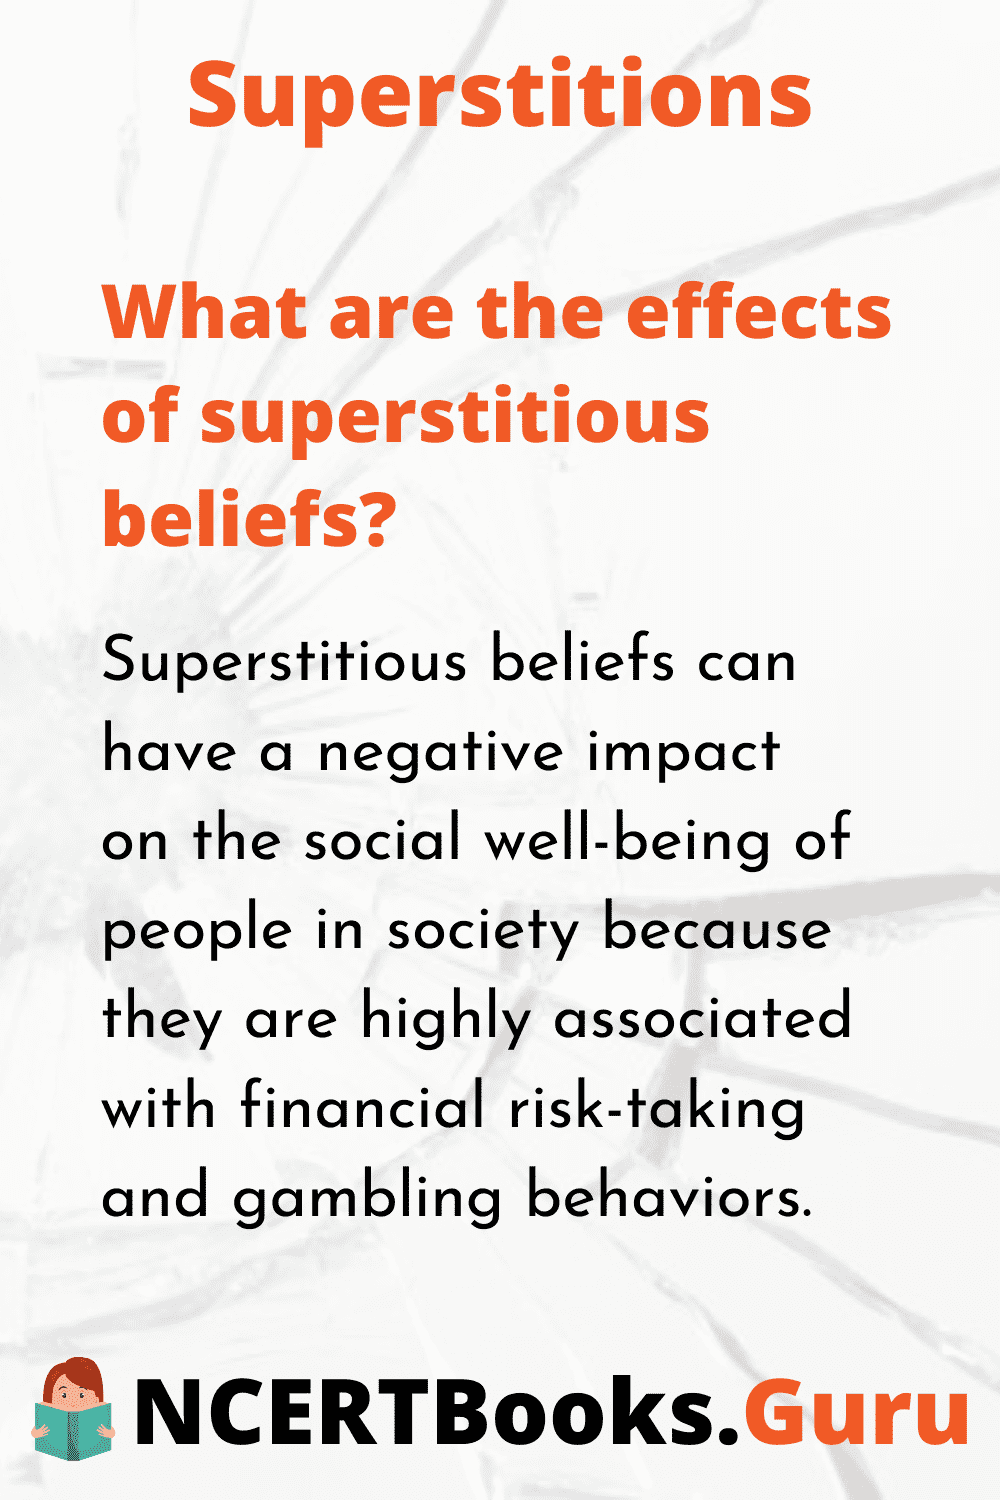 What are the effects of superstitious beliefs